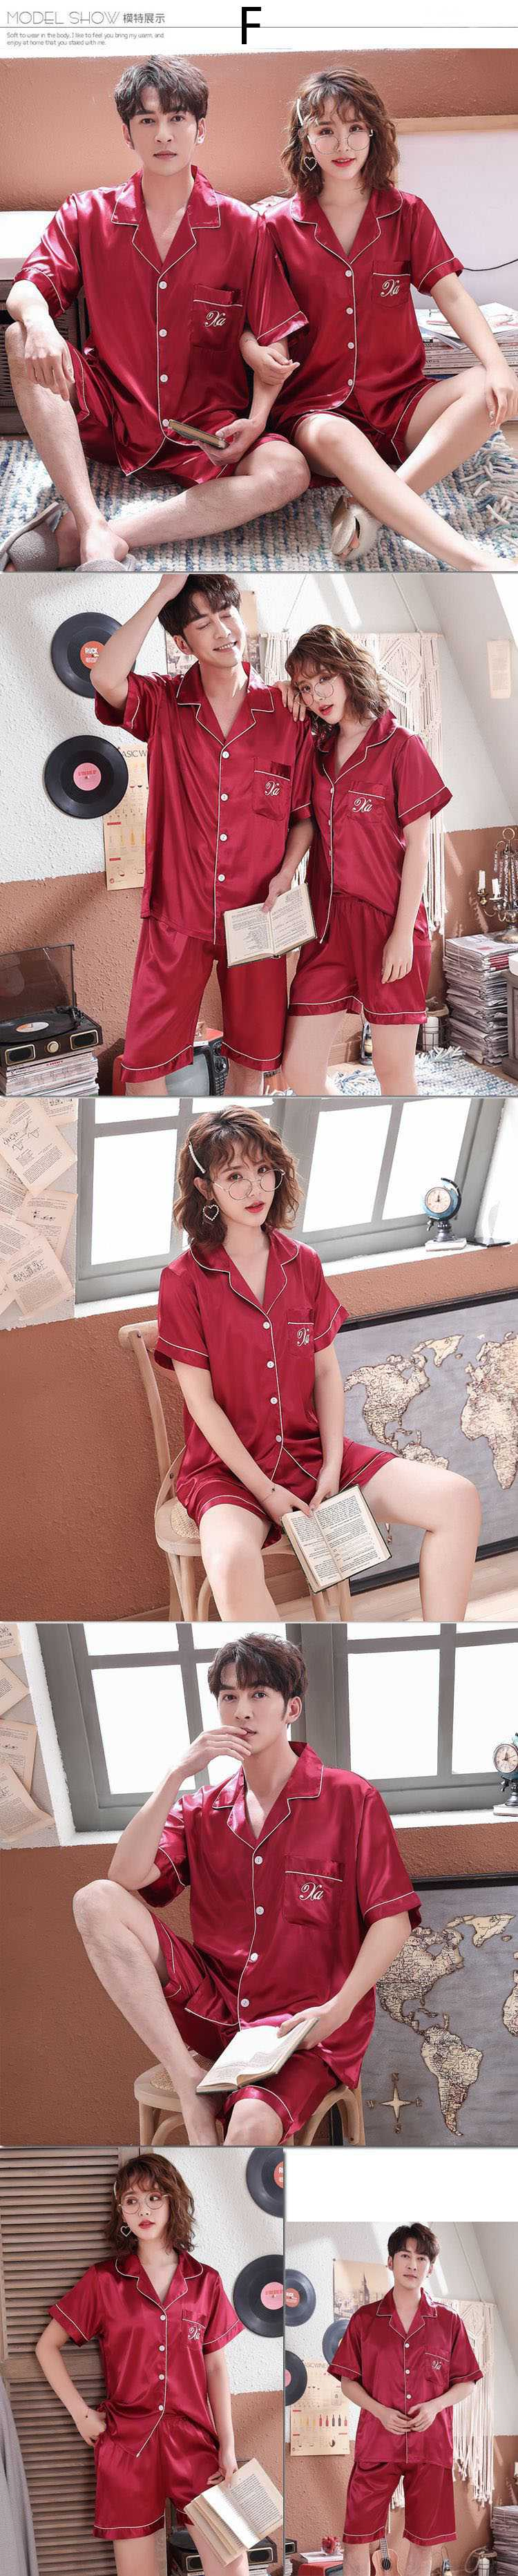 Summer Korean simulation silk couple short sleeve wide loose shirt V-neck pajamas suit on sale 8